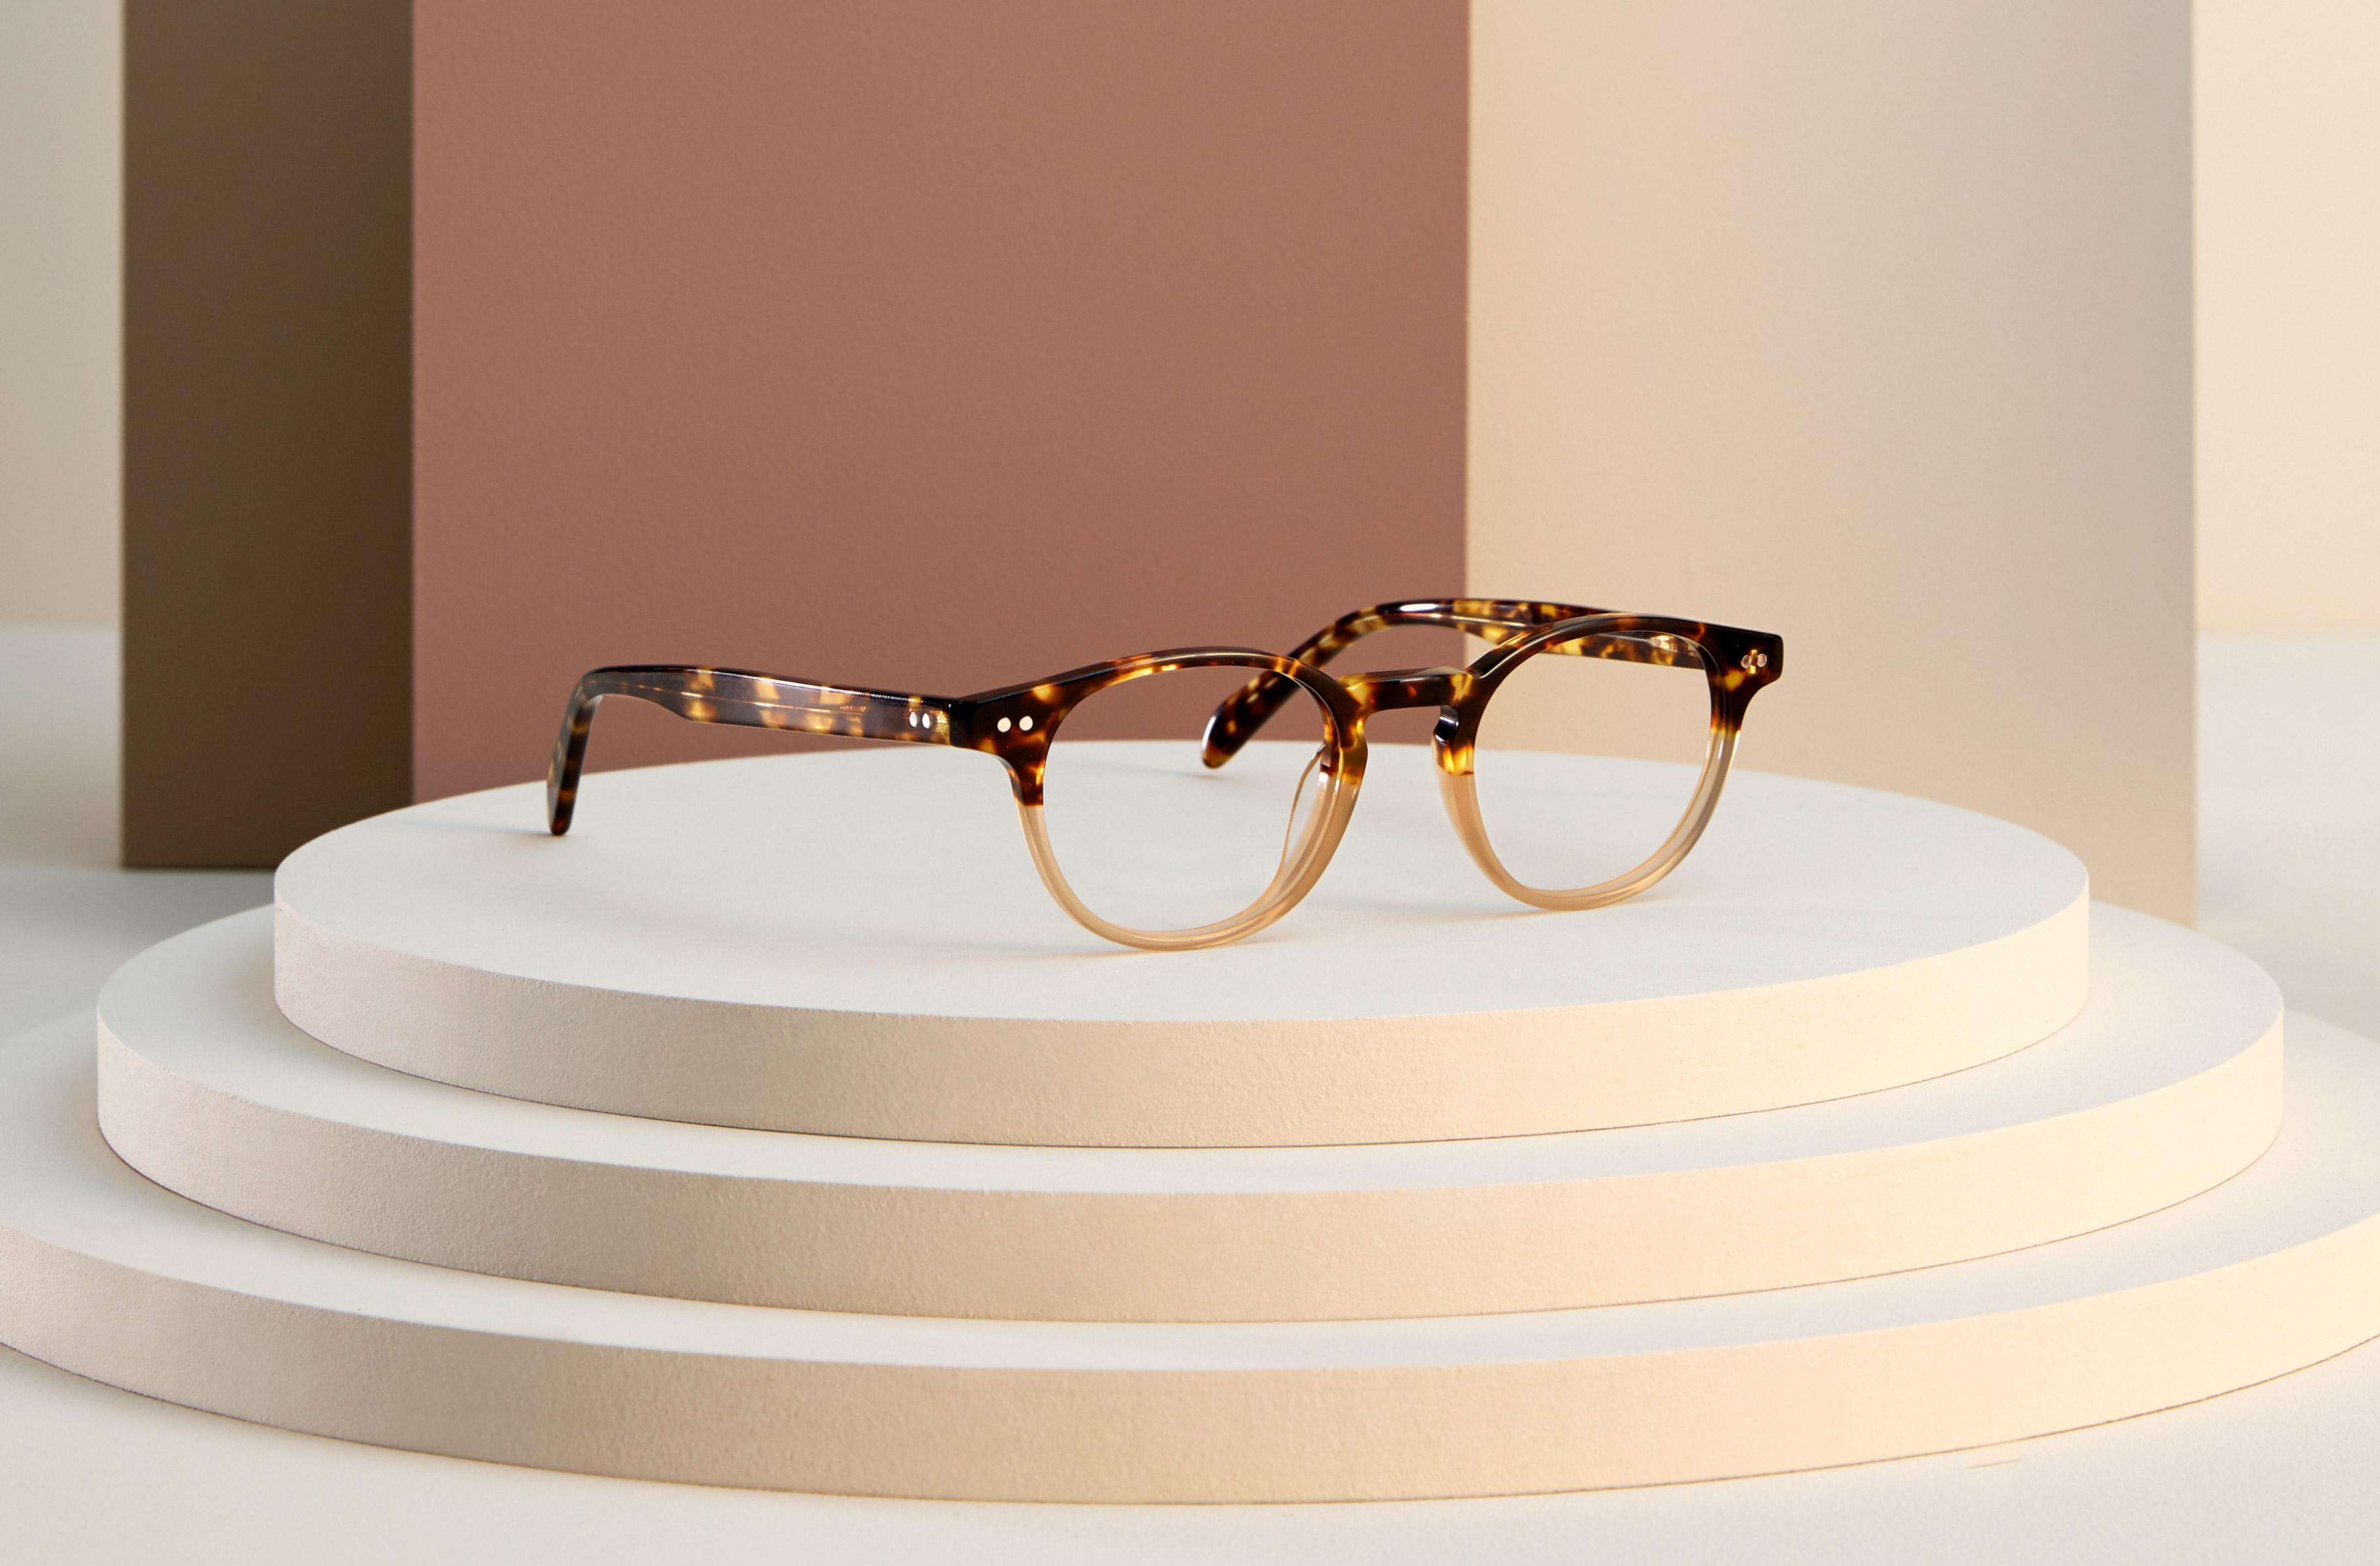 Eyewear Trends of 2021: The 6 Must-Have Styles of The Moment